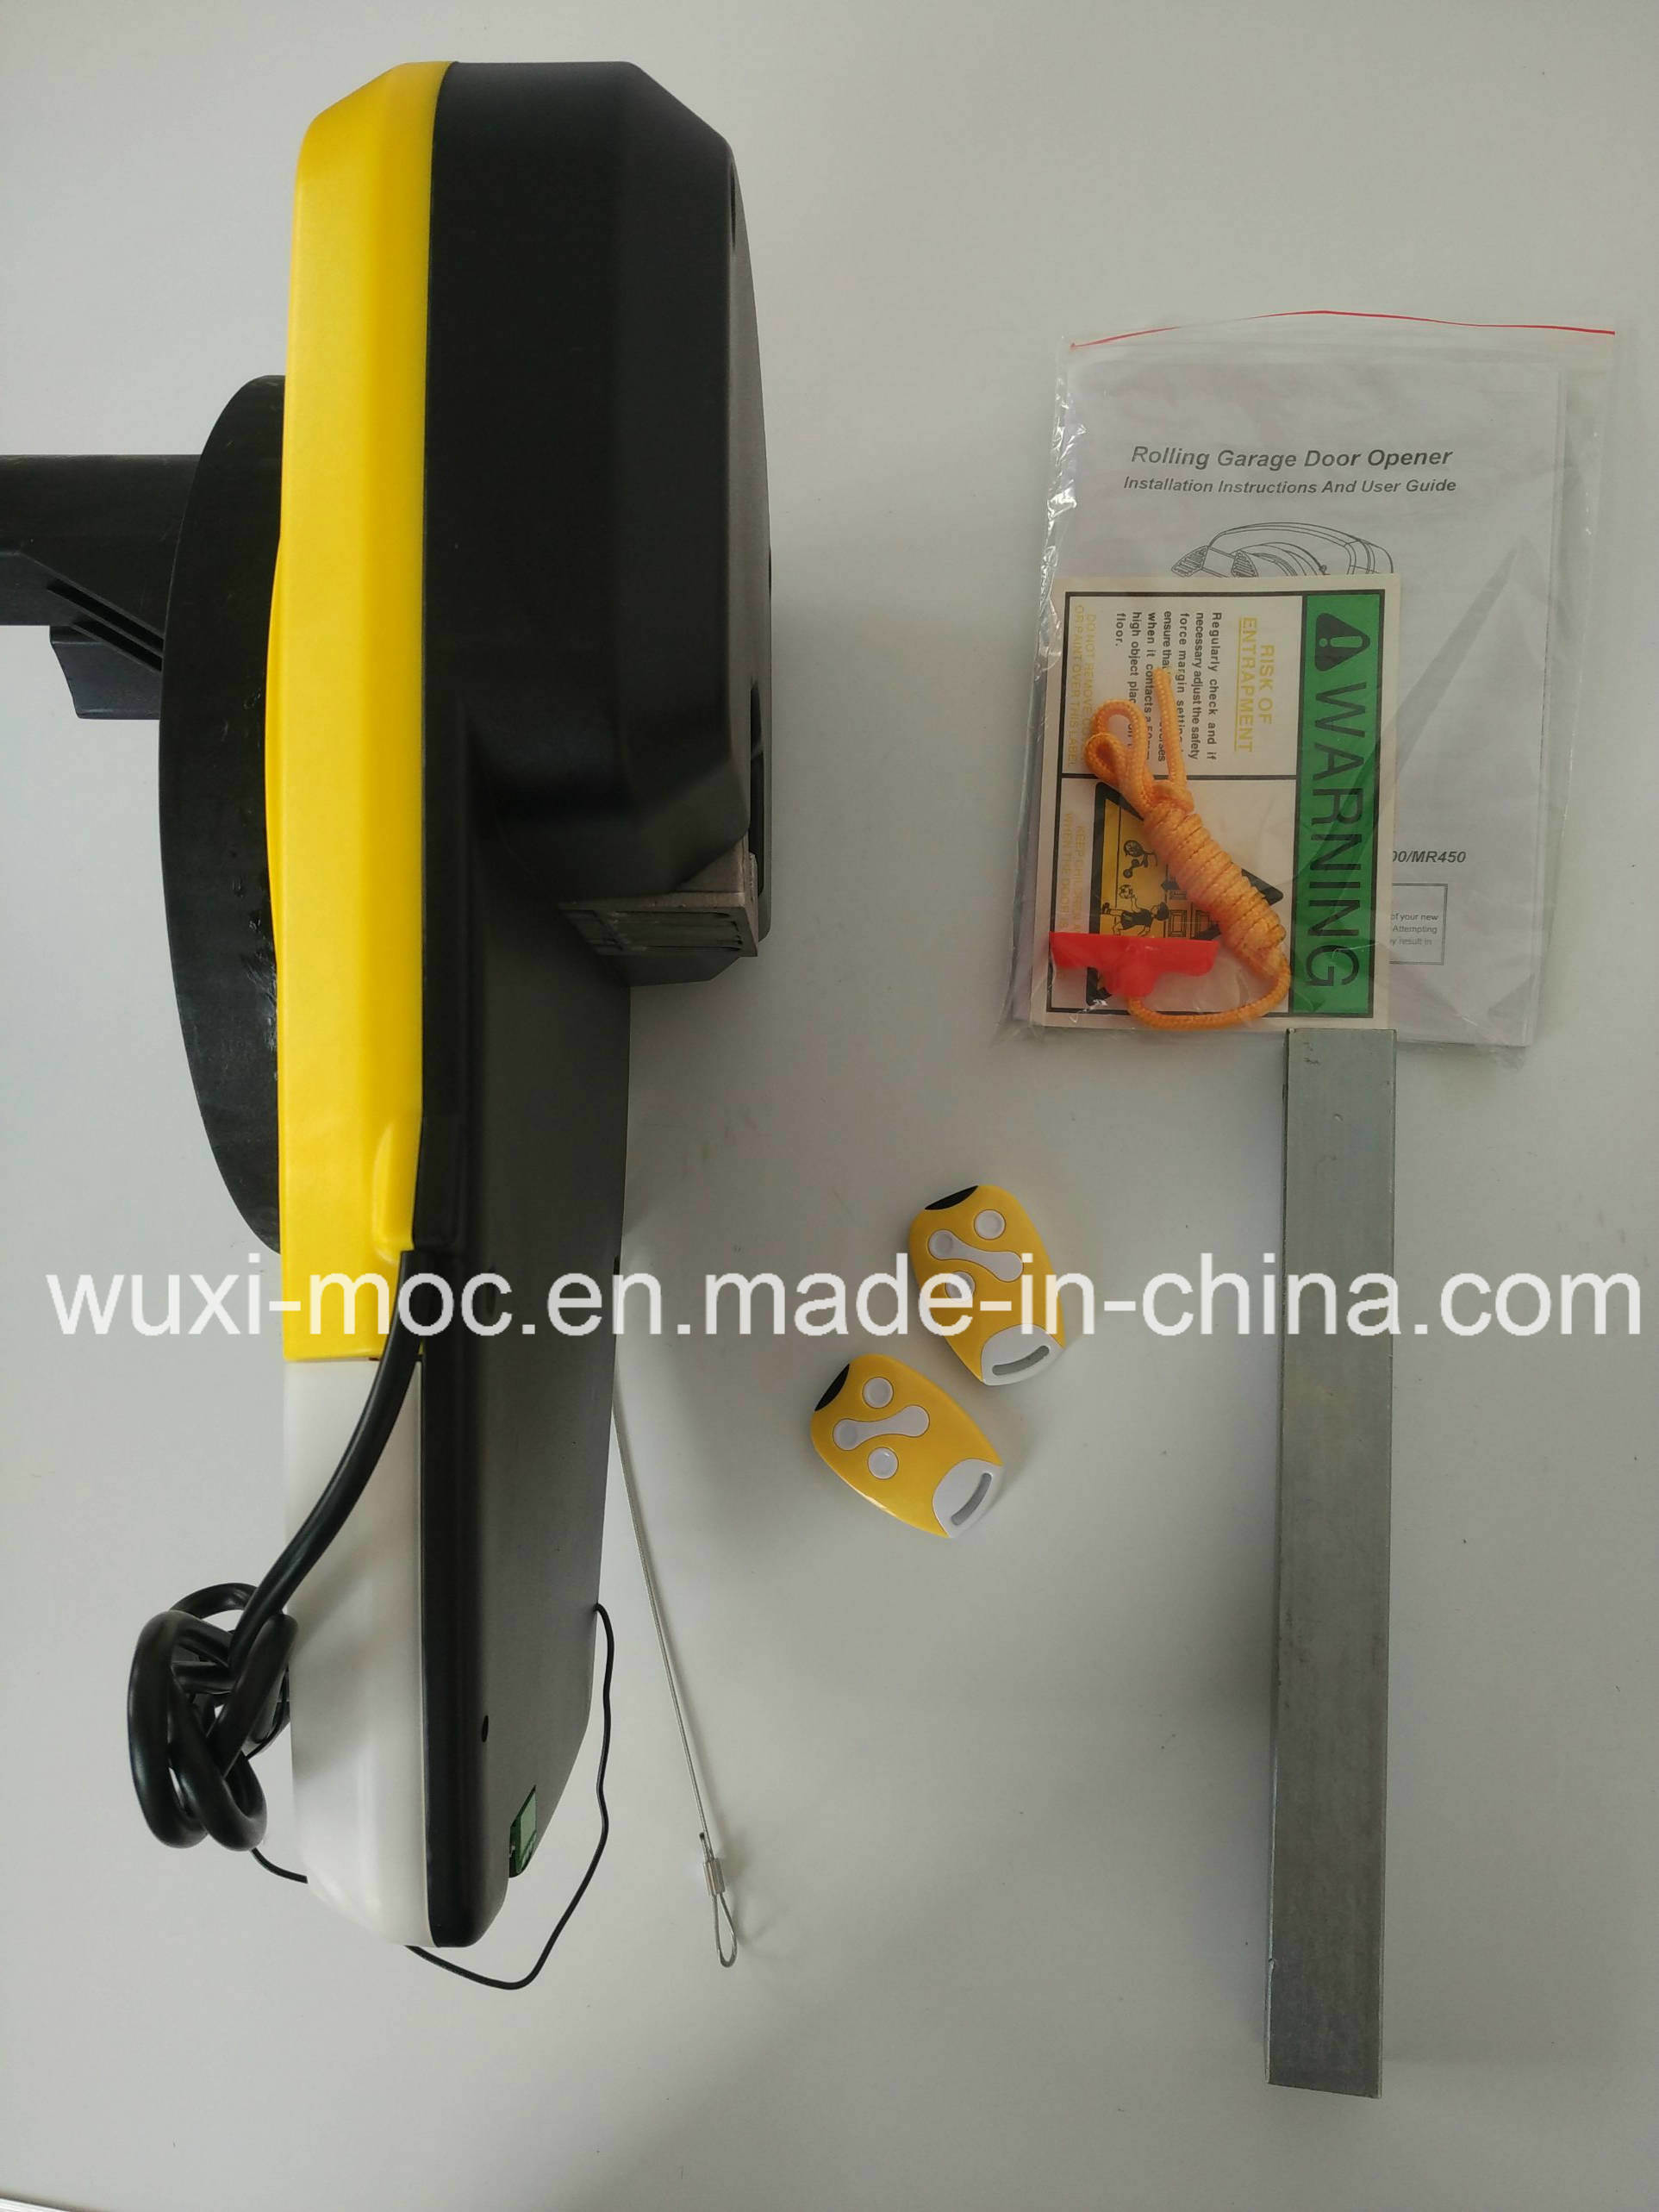 Garage Door Opener Remote Bunnings China Australia Bunnings Roller Rolling Garage Door Opener